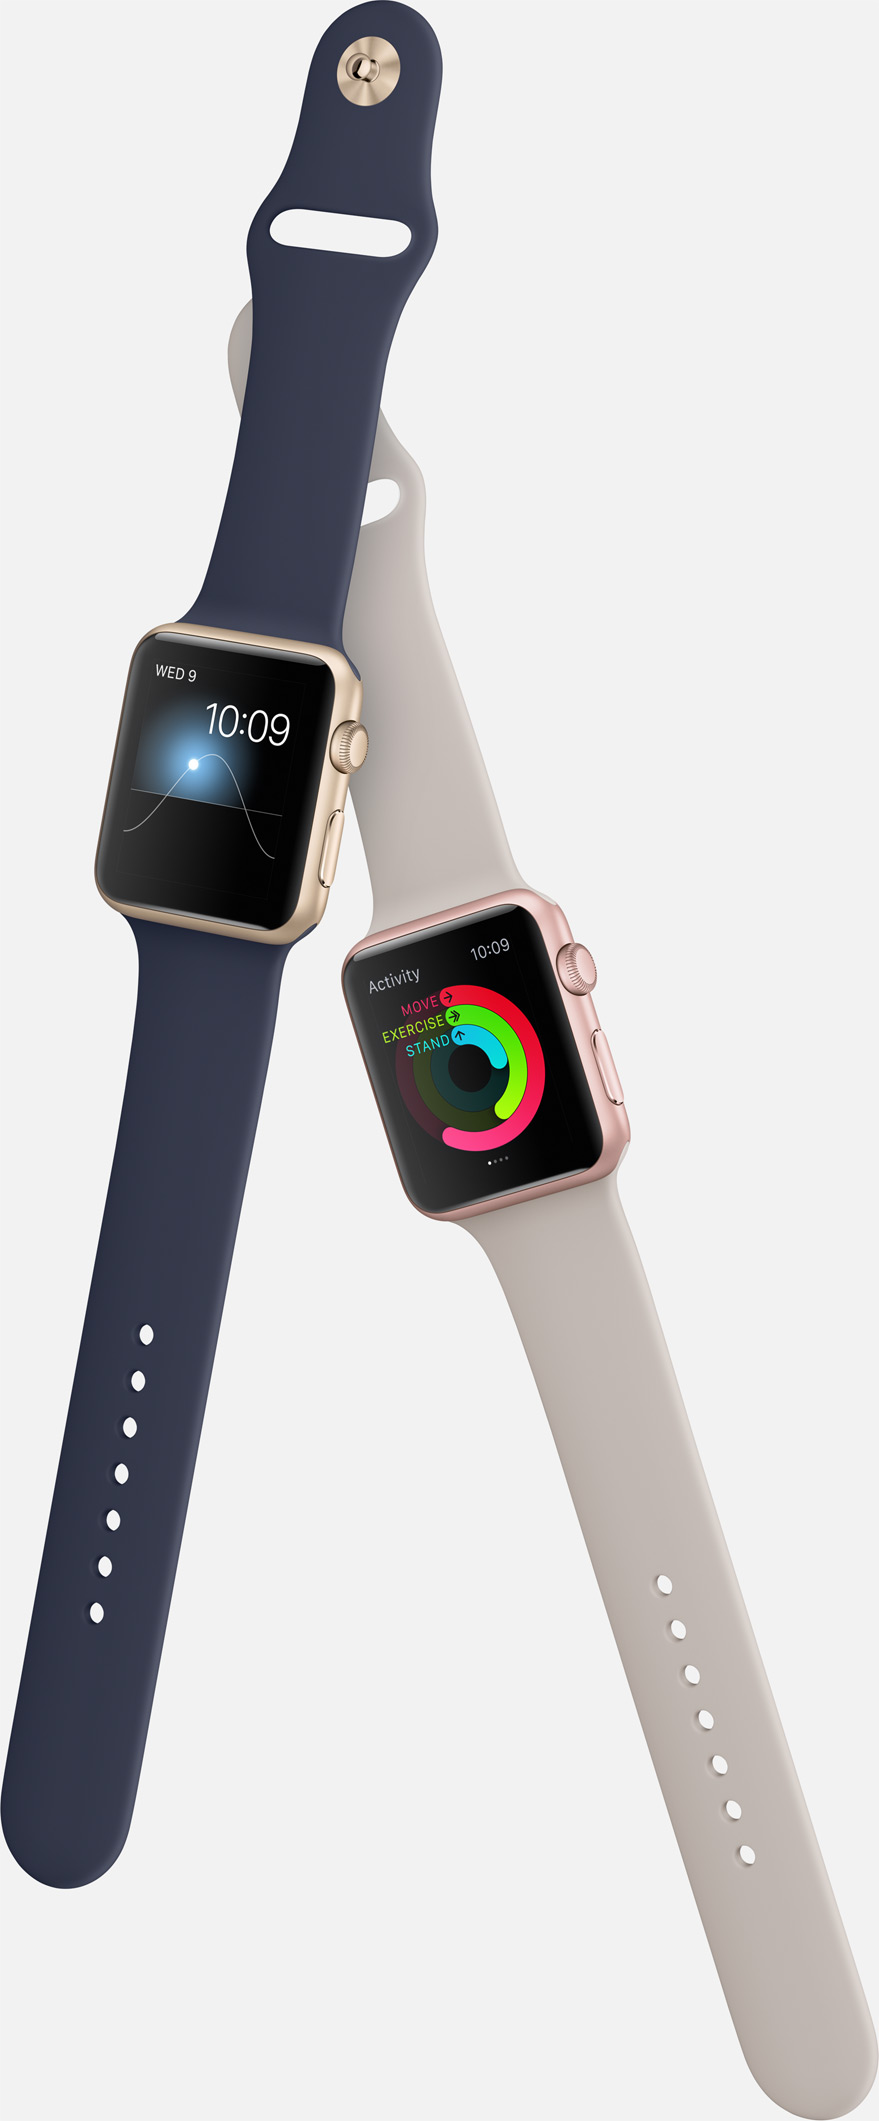 70 Percent of Apple Watch Users Notice Other Apple Watches in the Wild